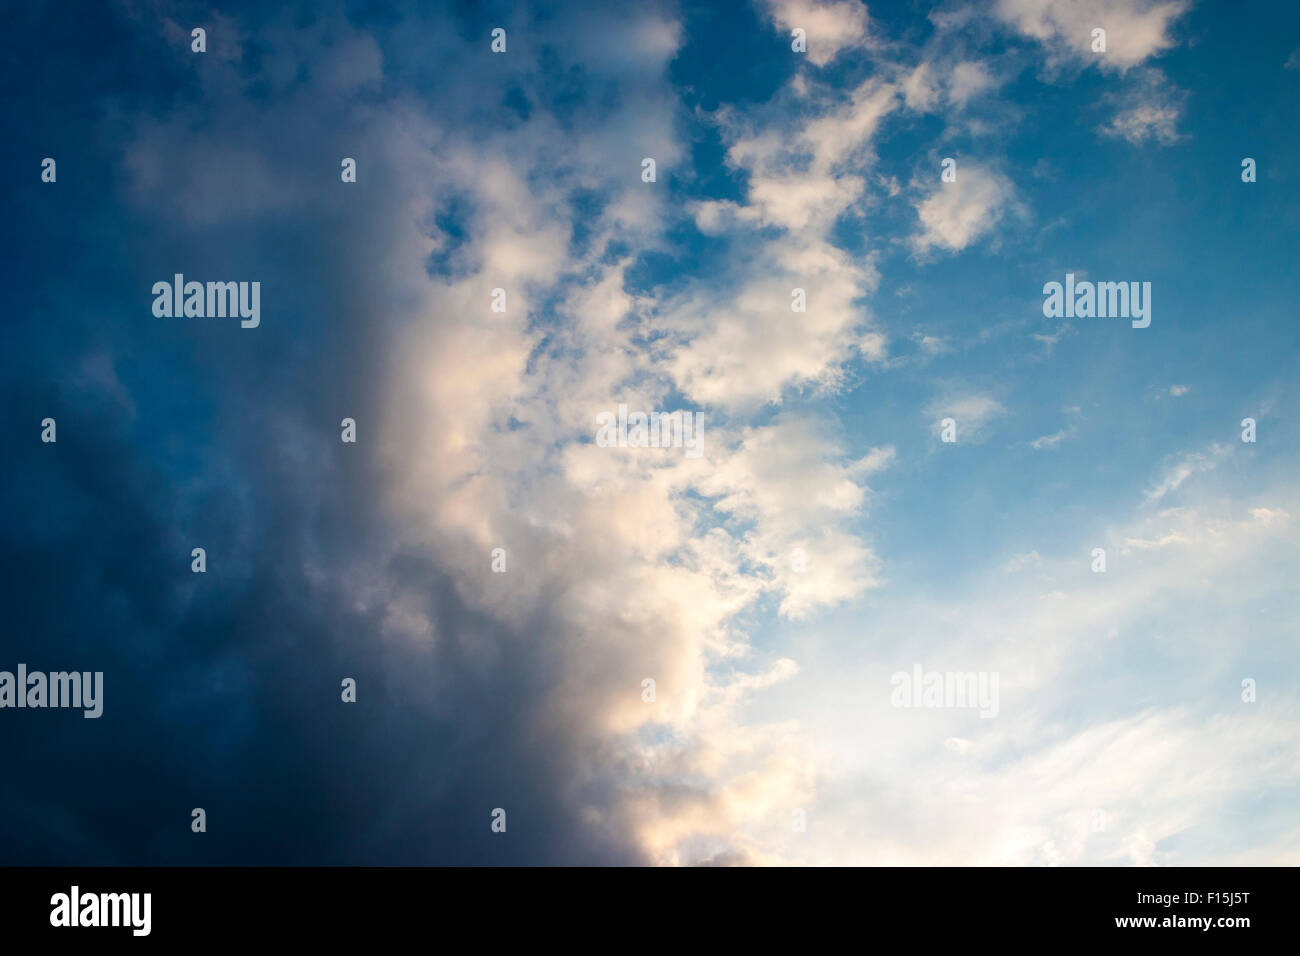 Soft, fluffy clouds in the sky - Stock Image